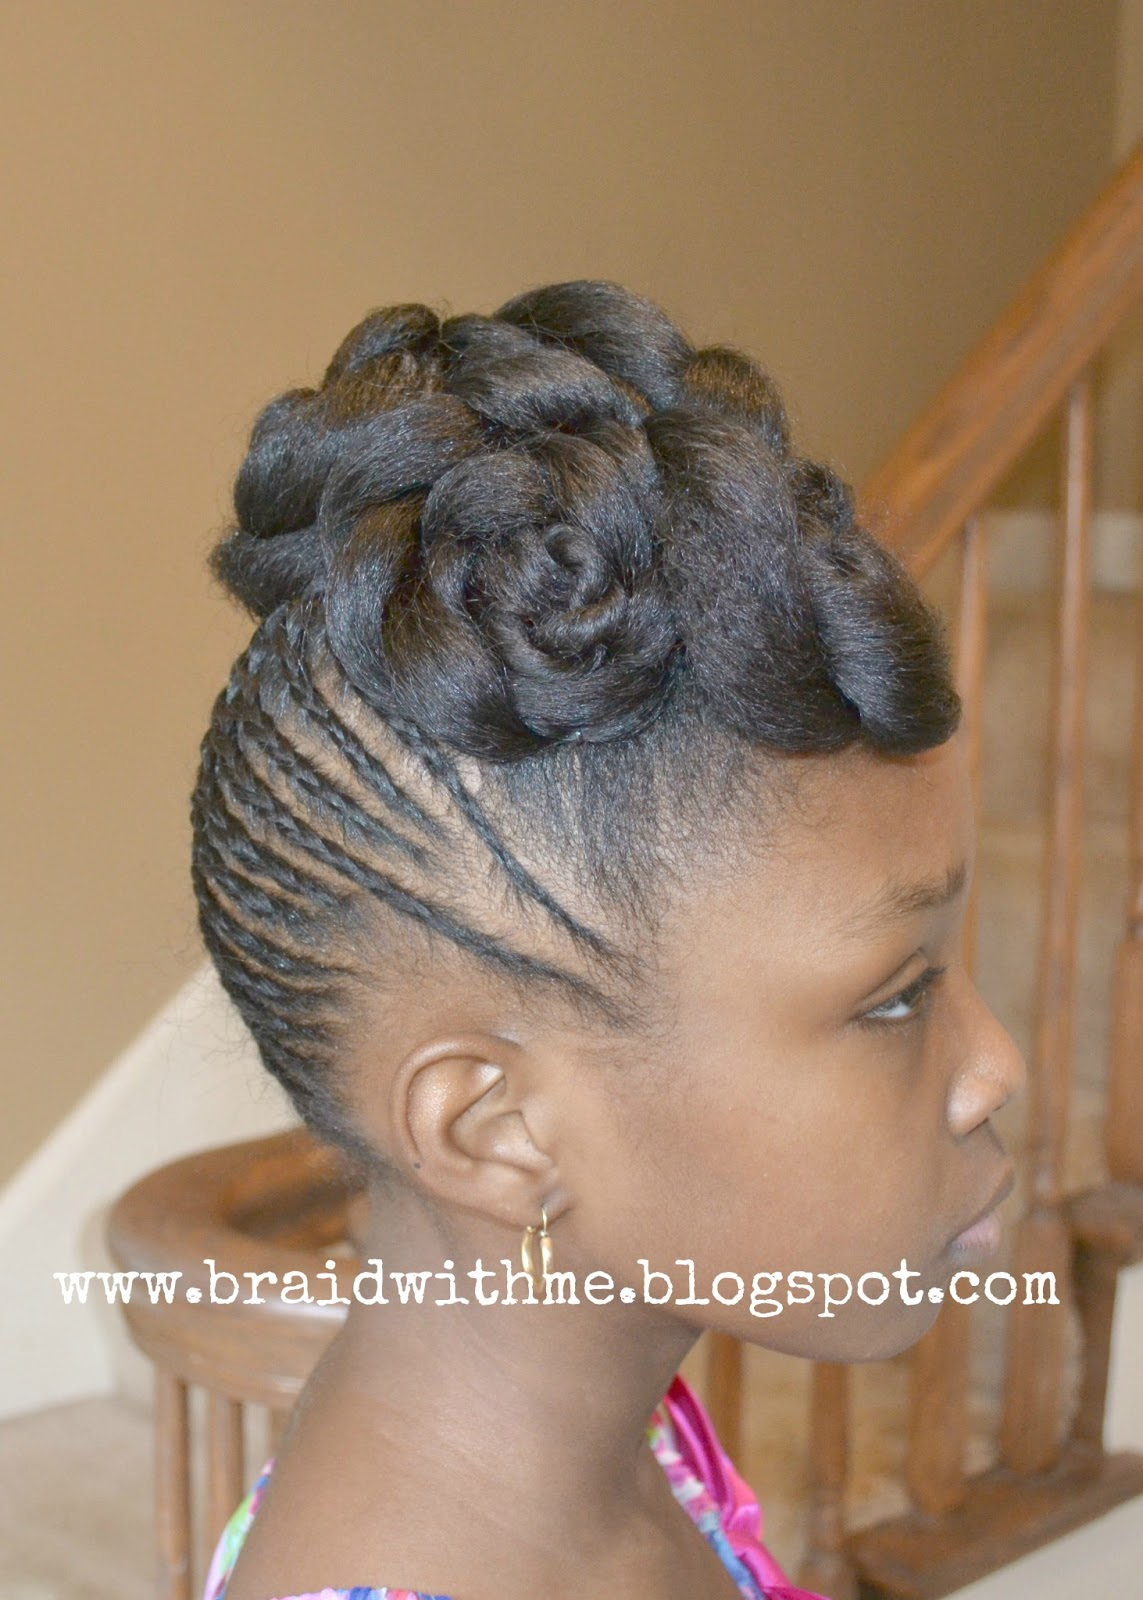 Braid With Me Easter Updo For Natural Hair